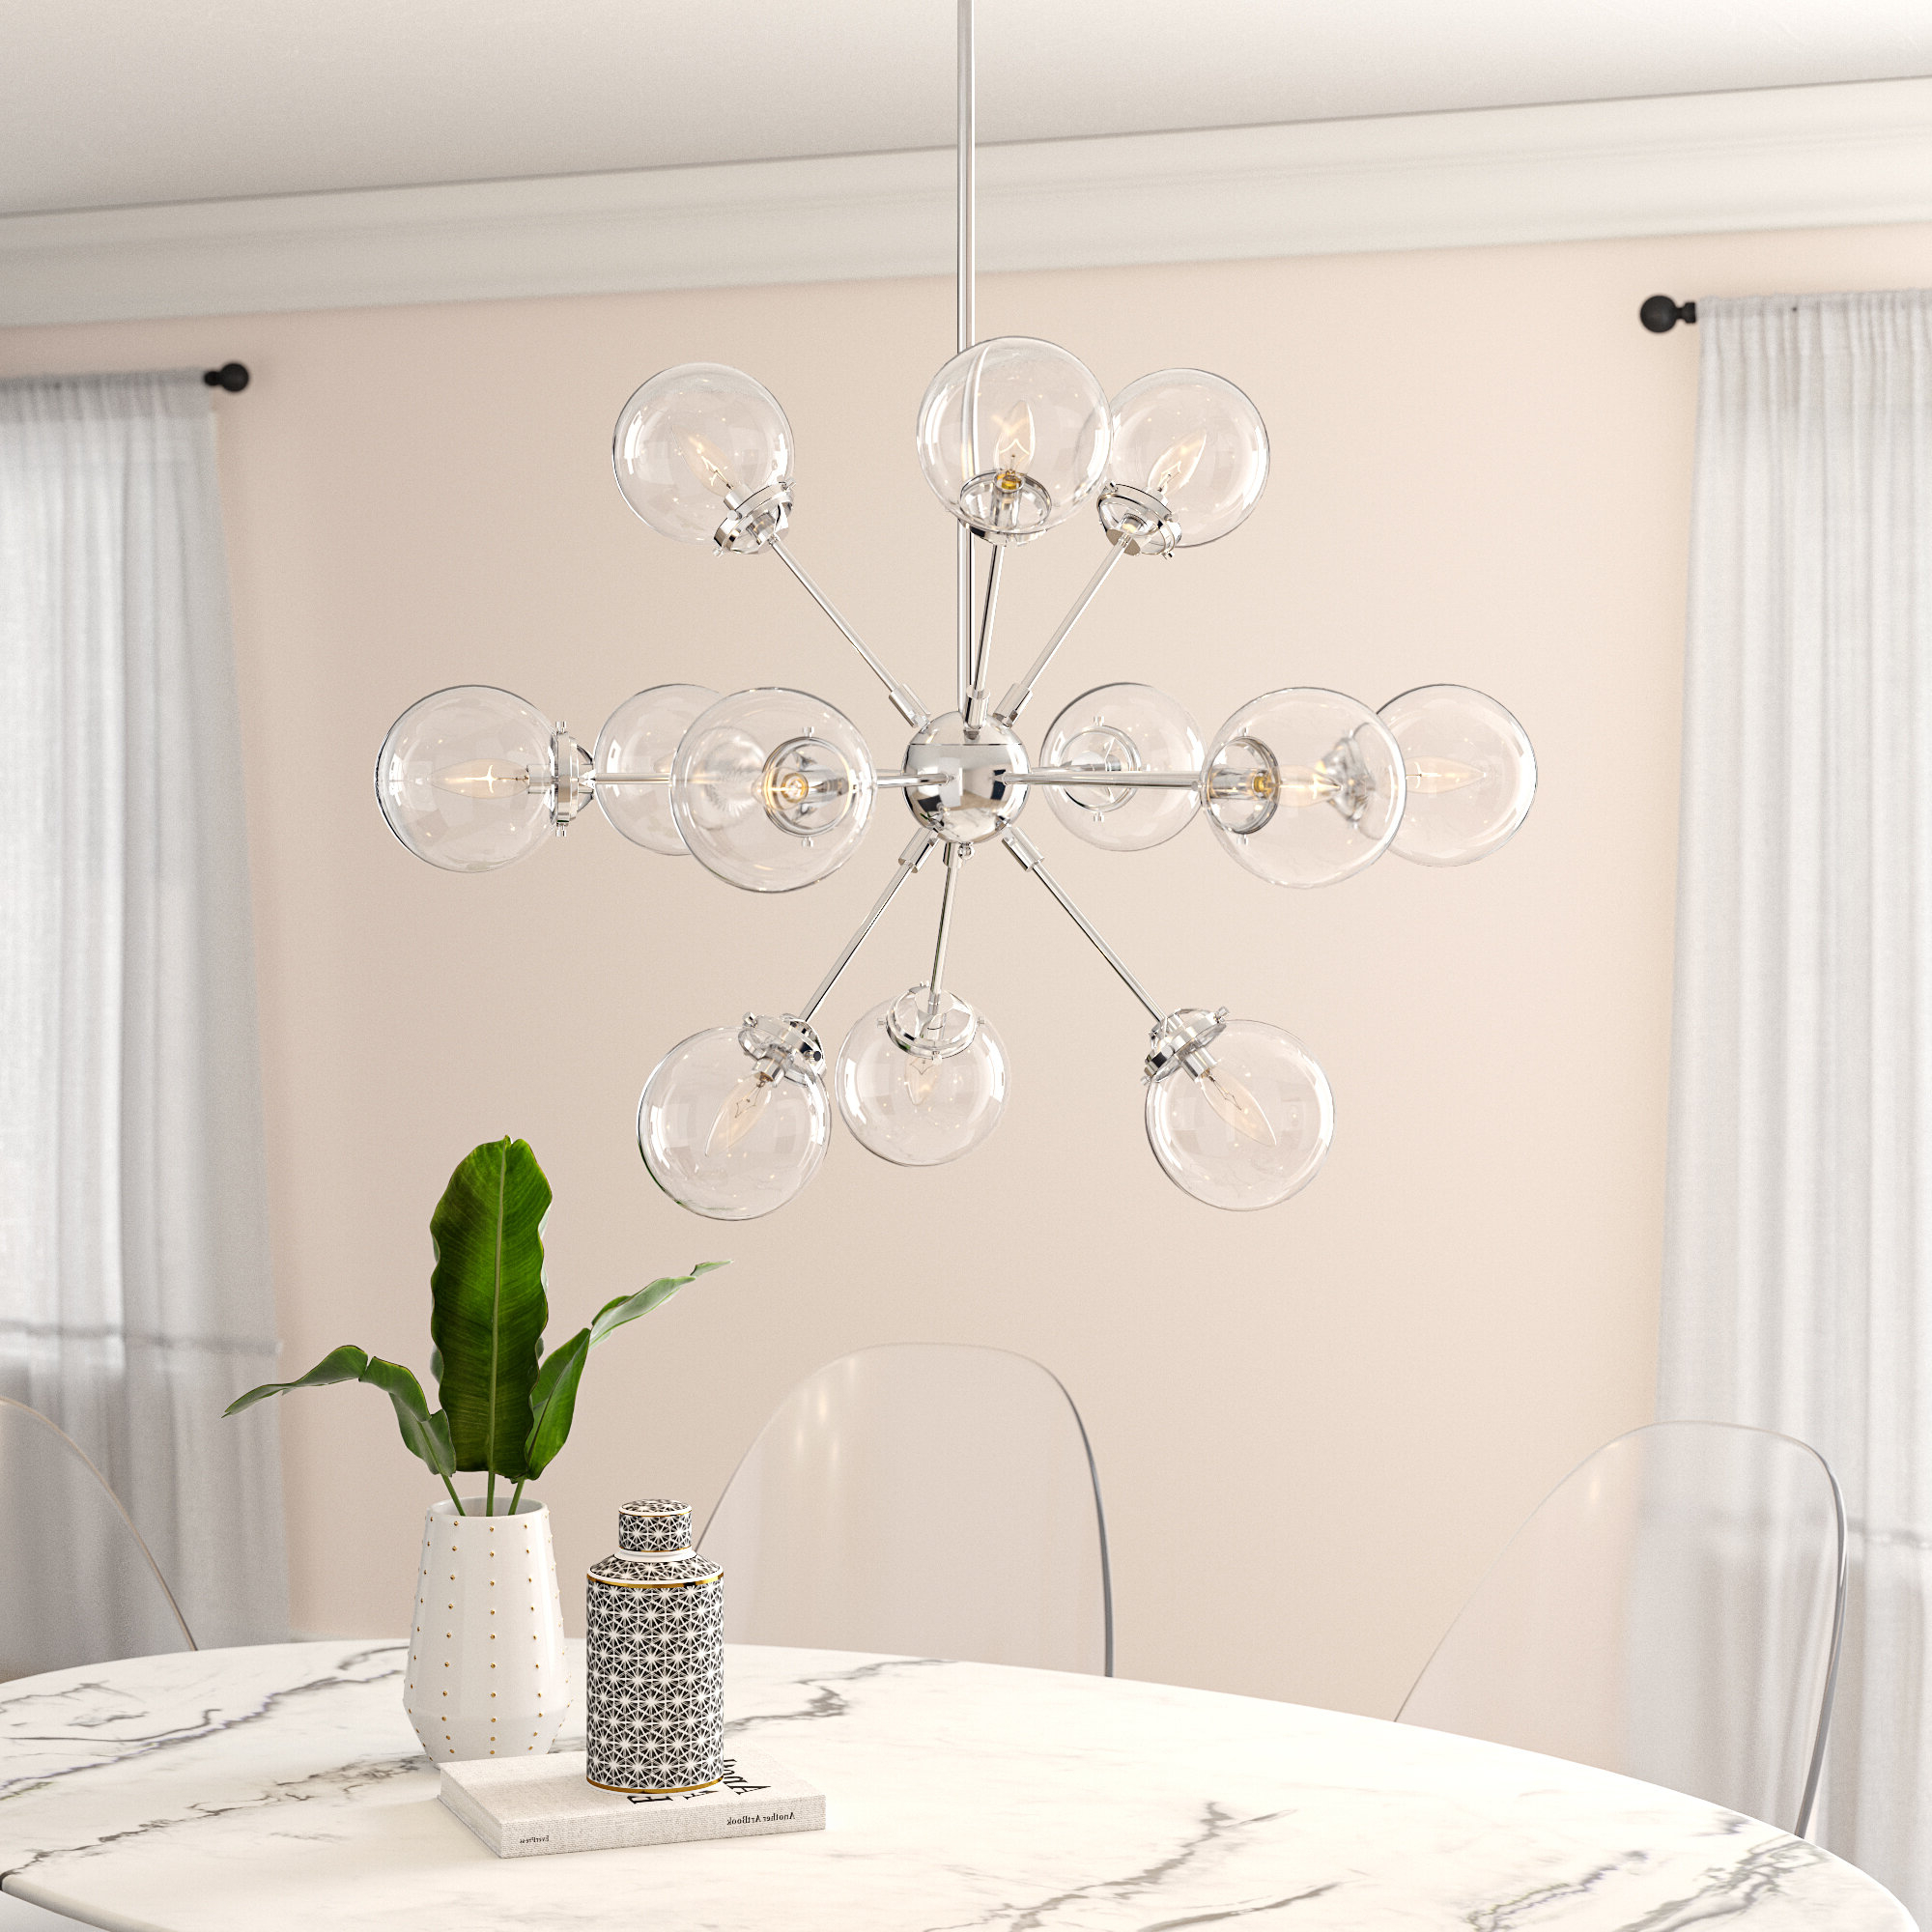 Widely Used Modern Rustic Interiors Asher 12 Light Sputnik Chandelier Throughout Asher 12 Light Sputnik Chandeliers (View 7 of 25)